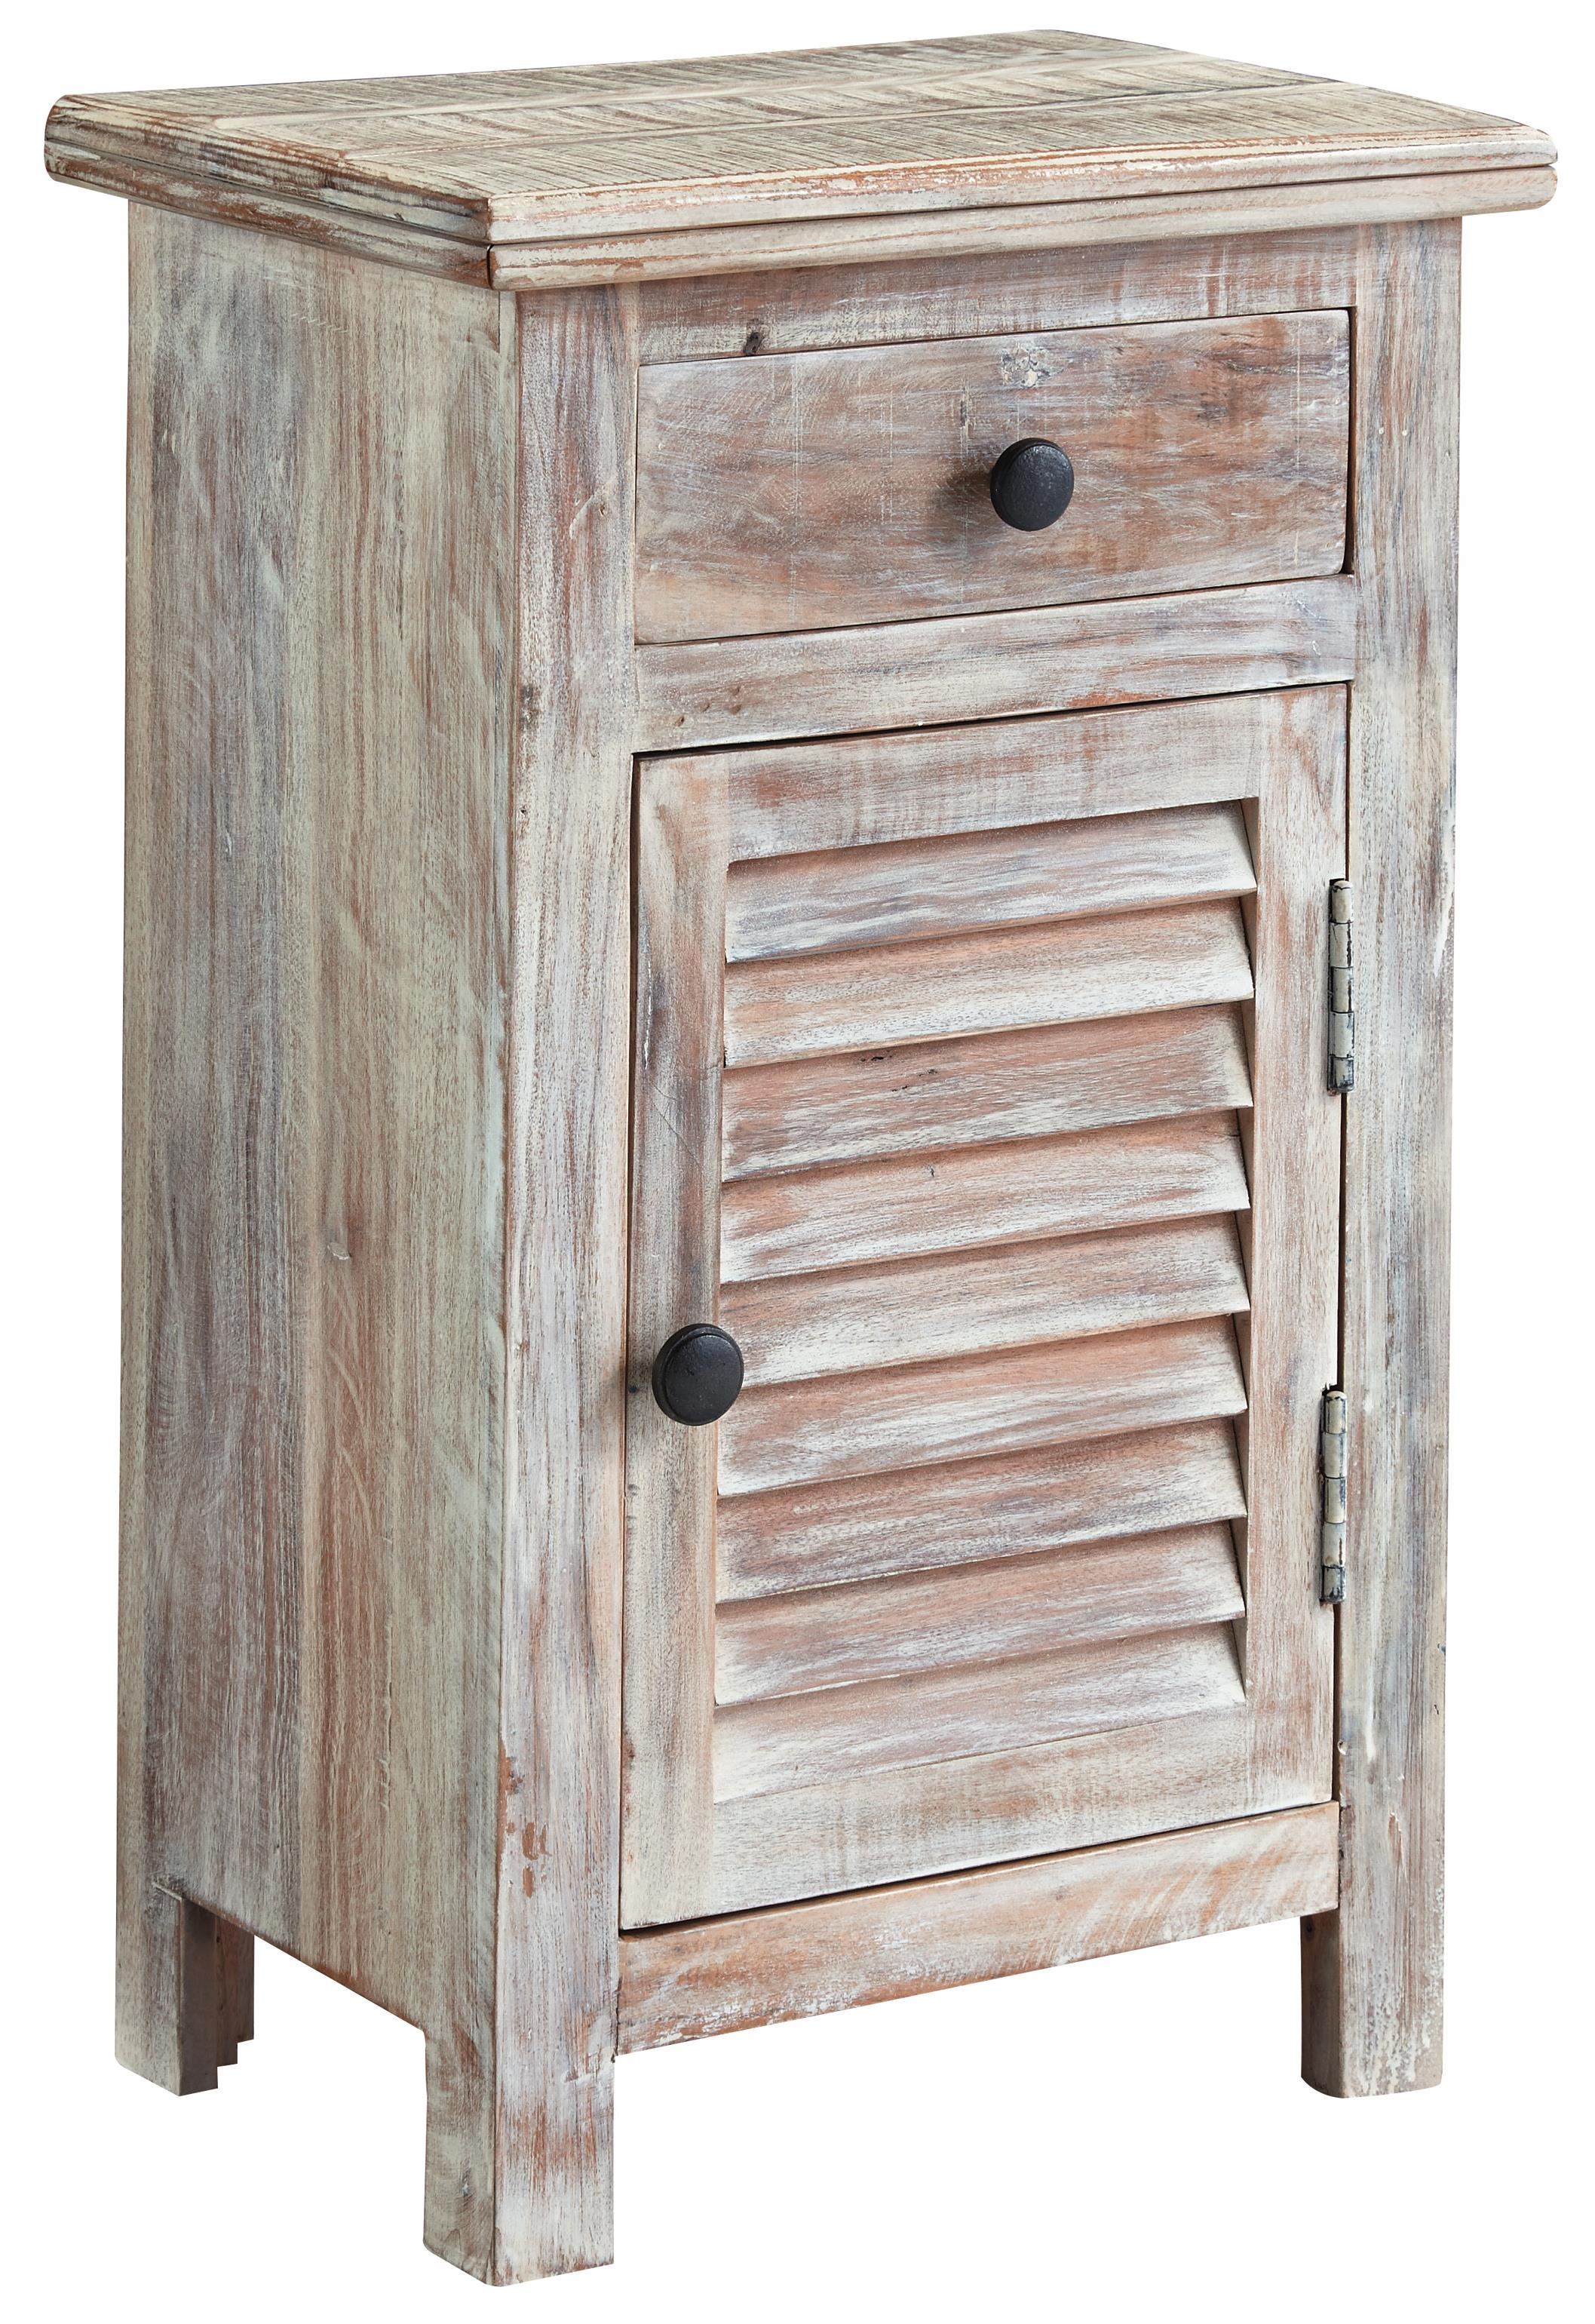 Signature Design by Ashley Charlowe Door Night Stand - Item Number: B013-292